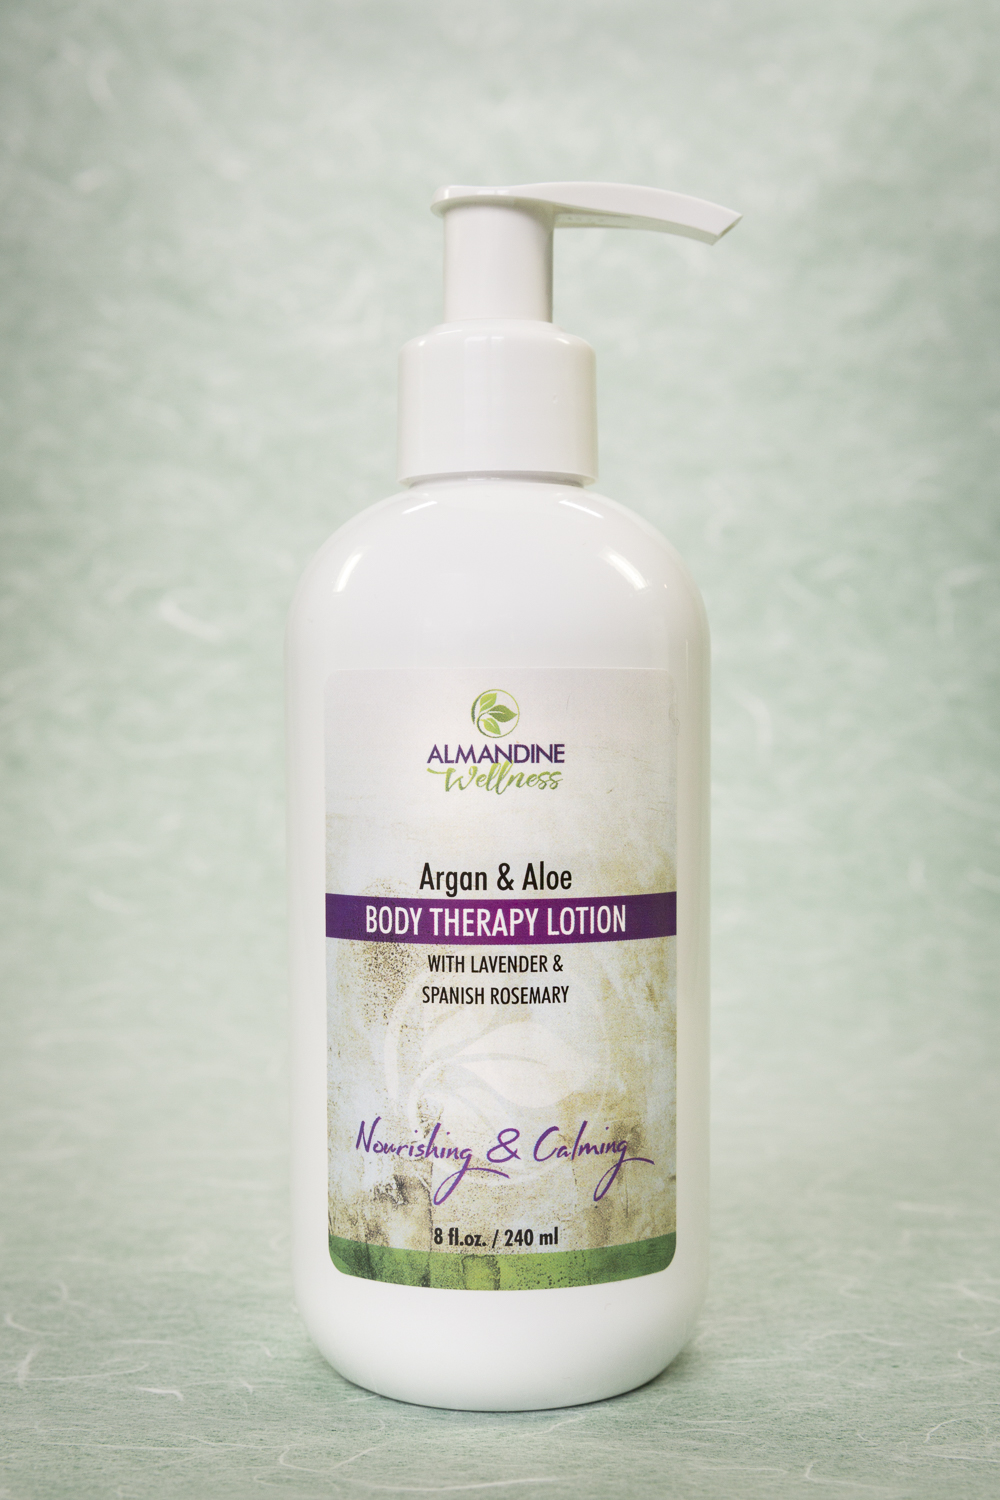 Argan & Aloe Body Therapy Lotion